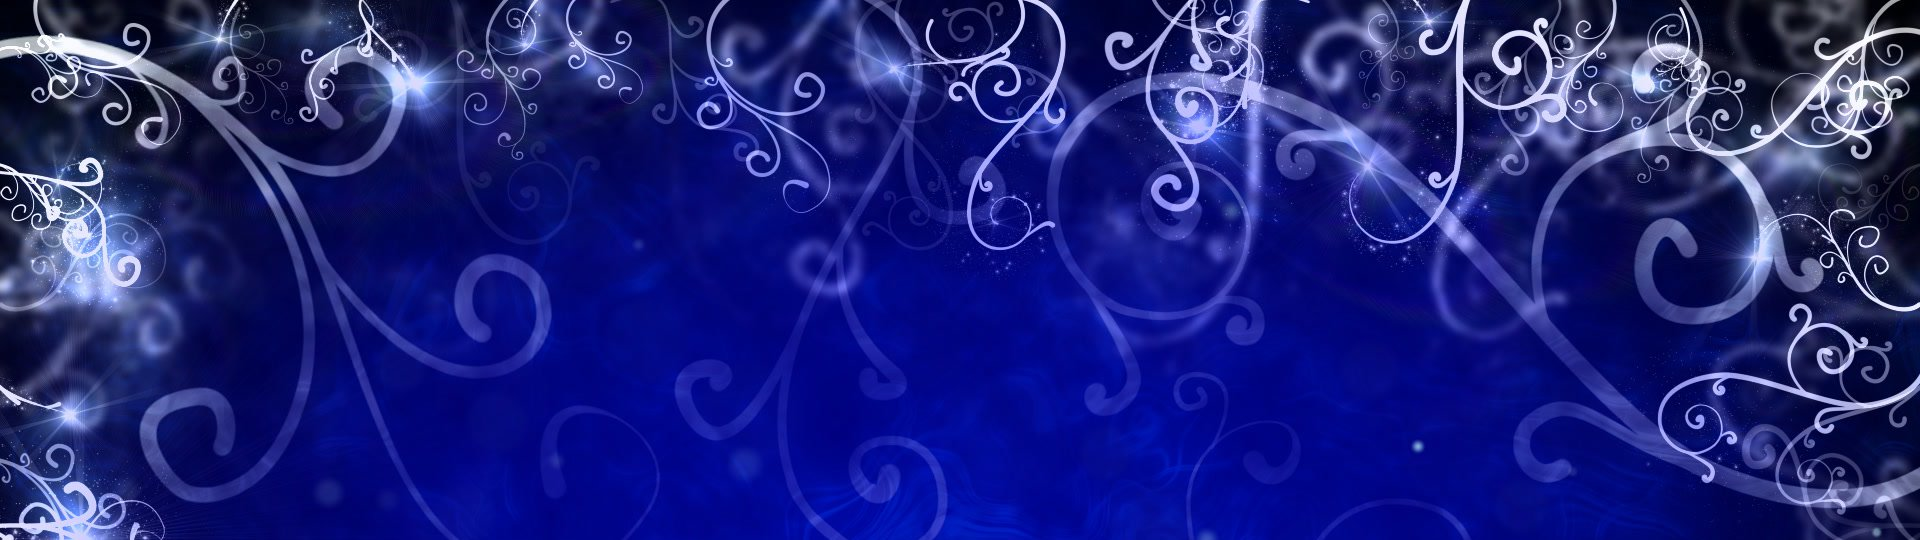 Blue flourishes frame loop background | blue flourishes frame. Computer generated abstract motion seamless loop background - ID:12409